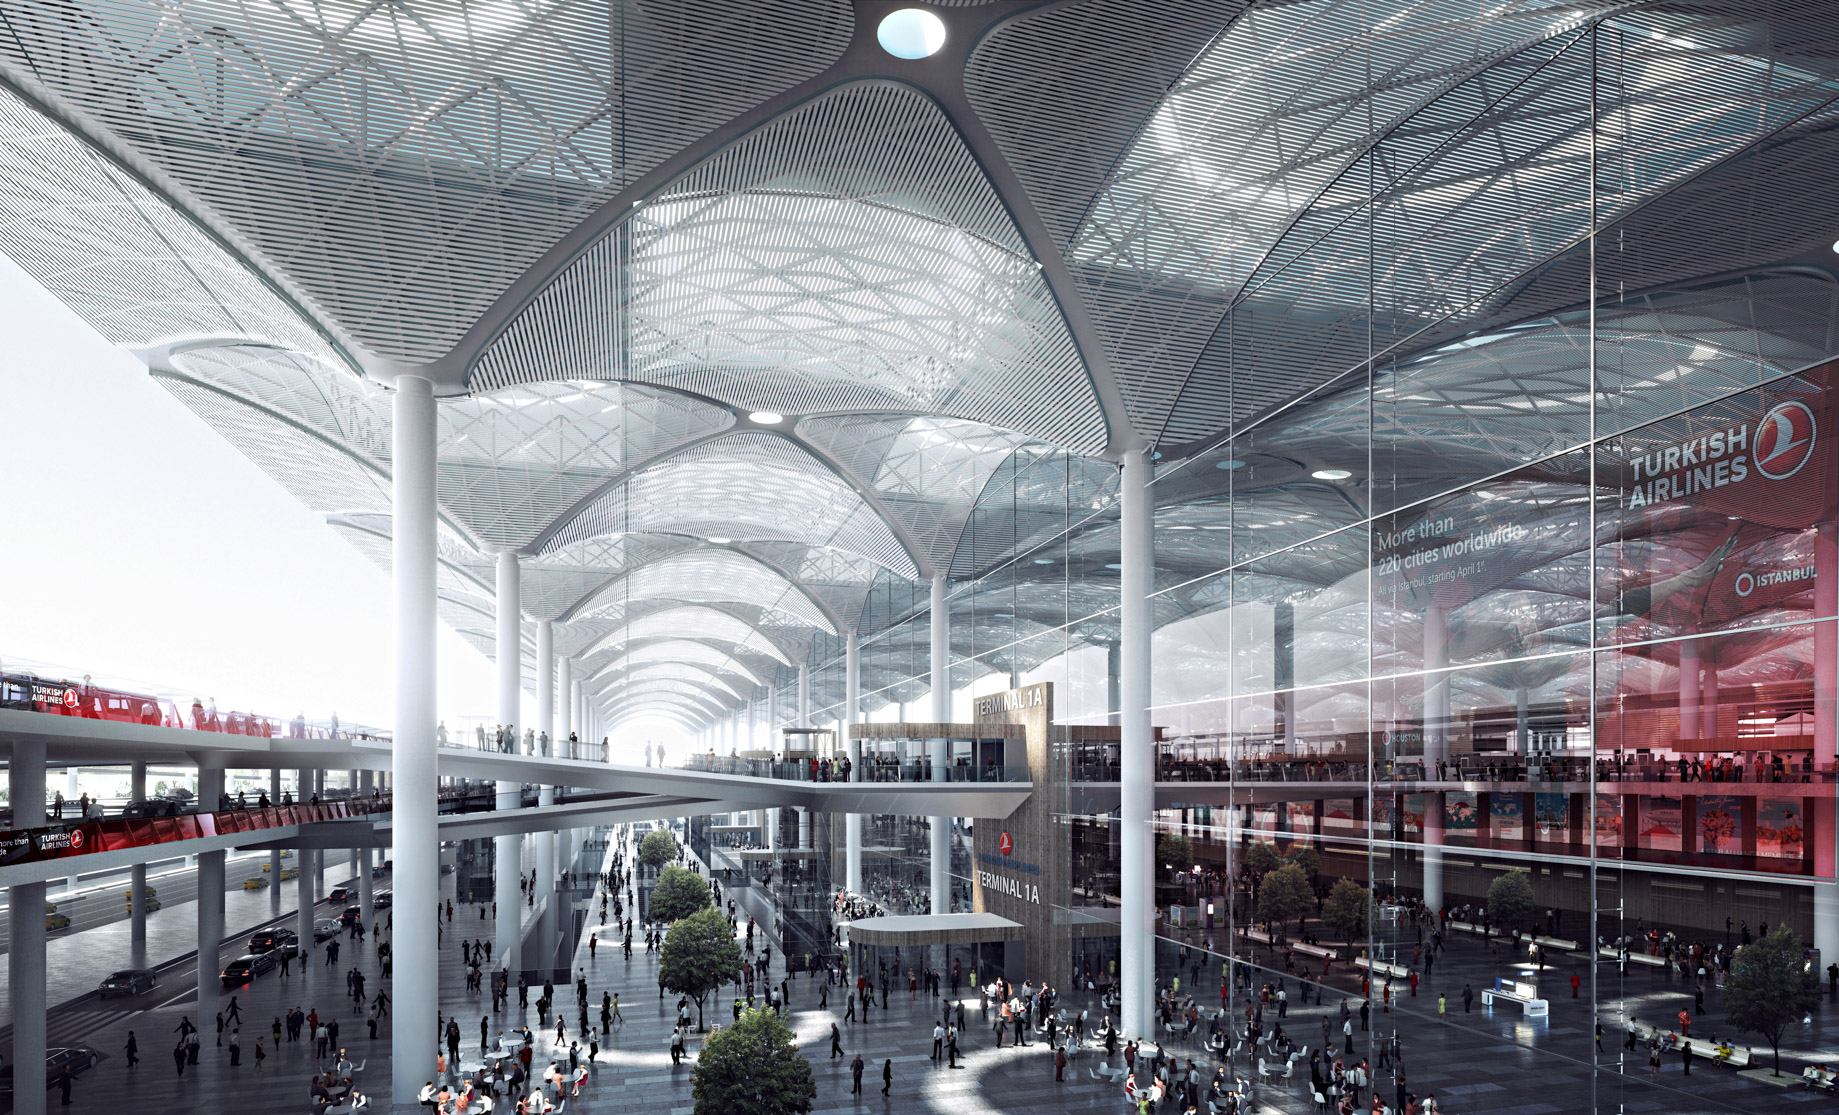 Airside - New International Airport in Istanbul, Turkey will be a Modern Architectural Masterpiece